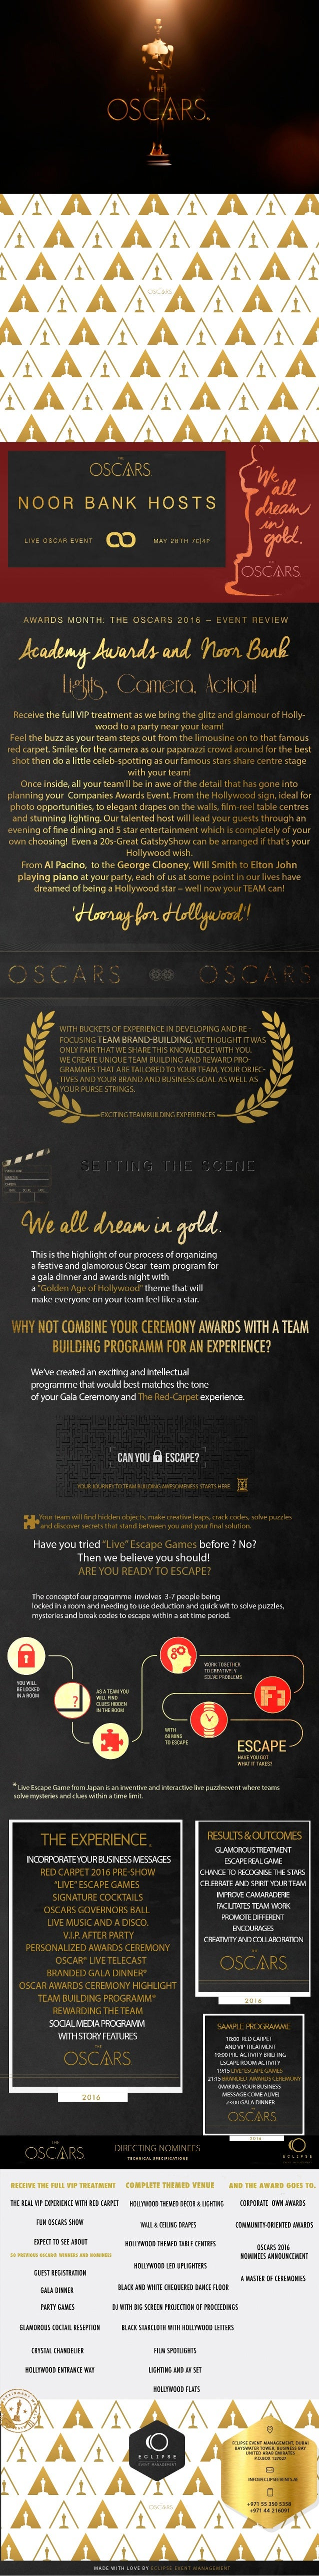 Team Building and Award Ceremony Event, UAE  by Eclipse Event Management, Dubai